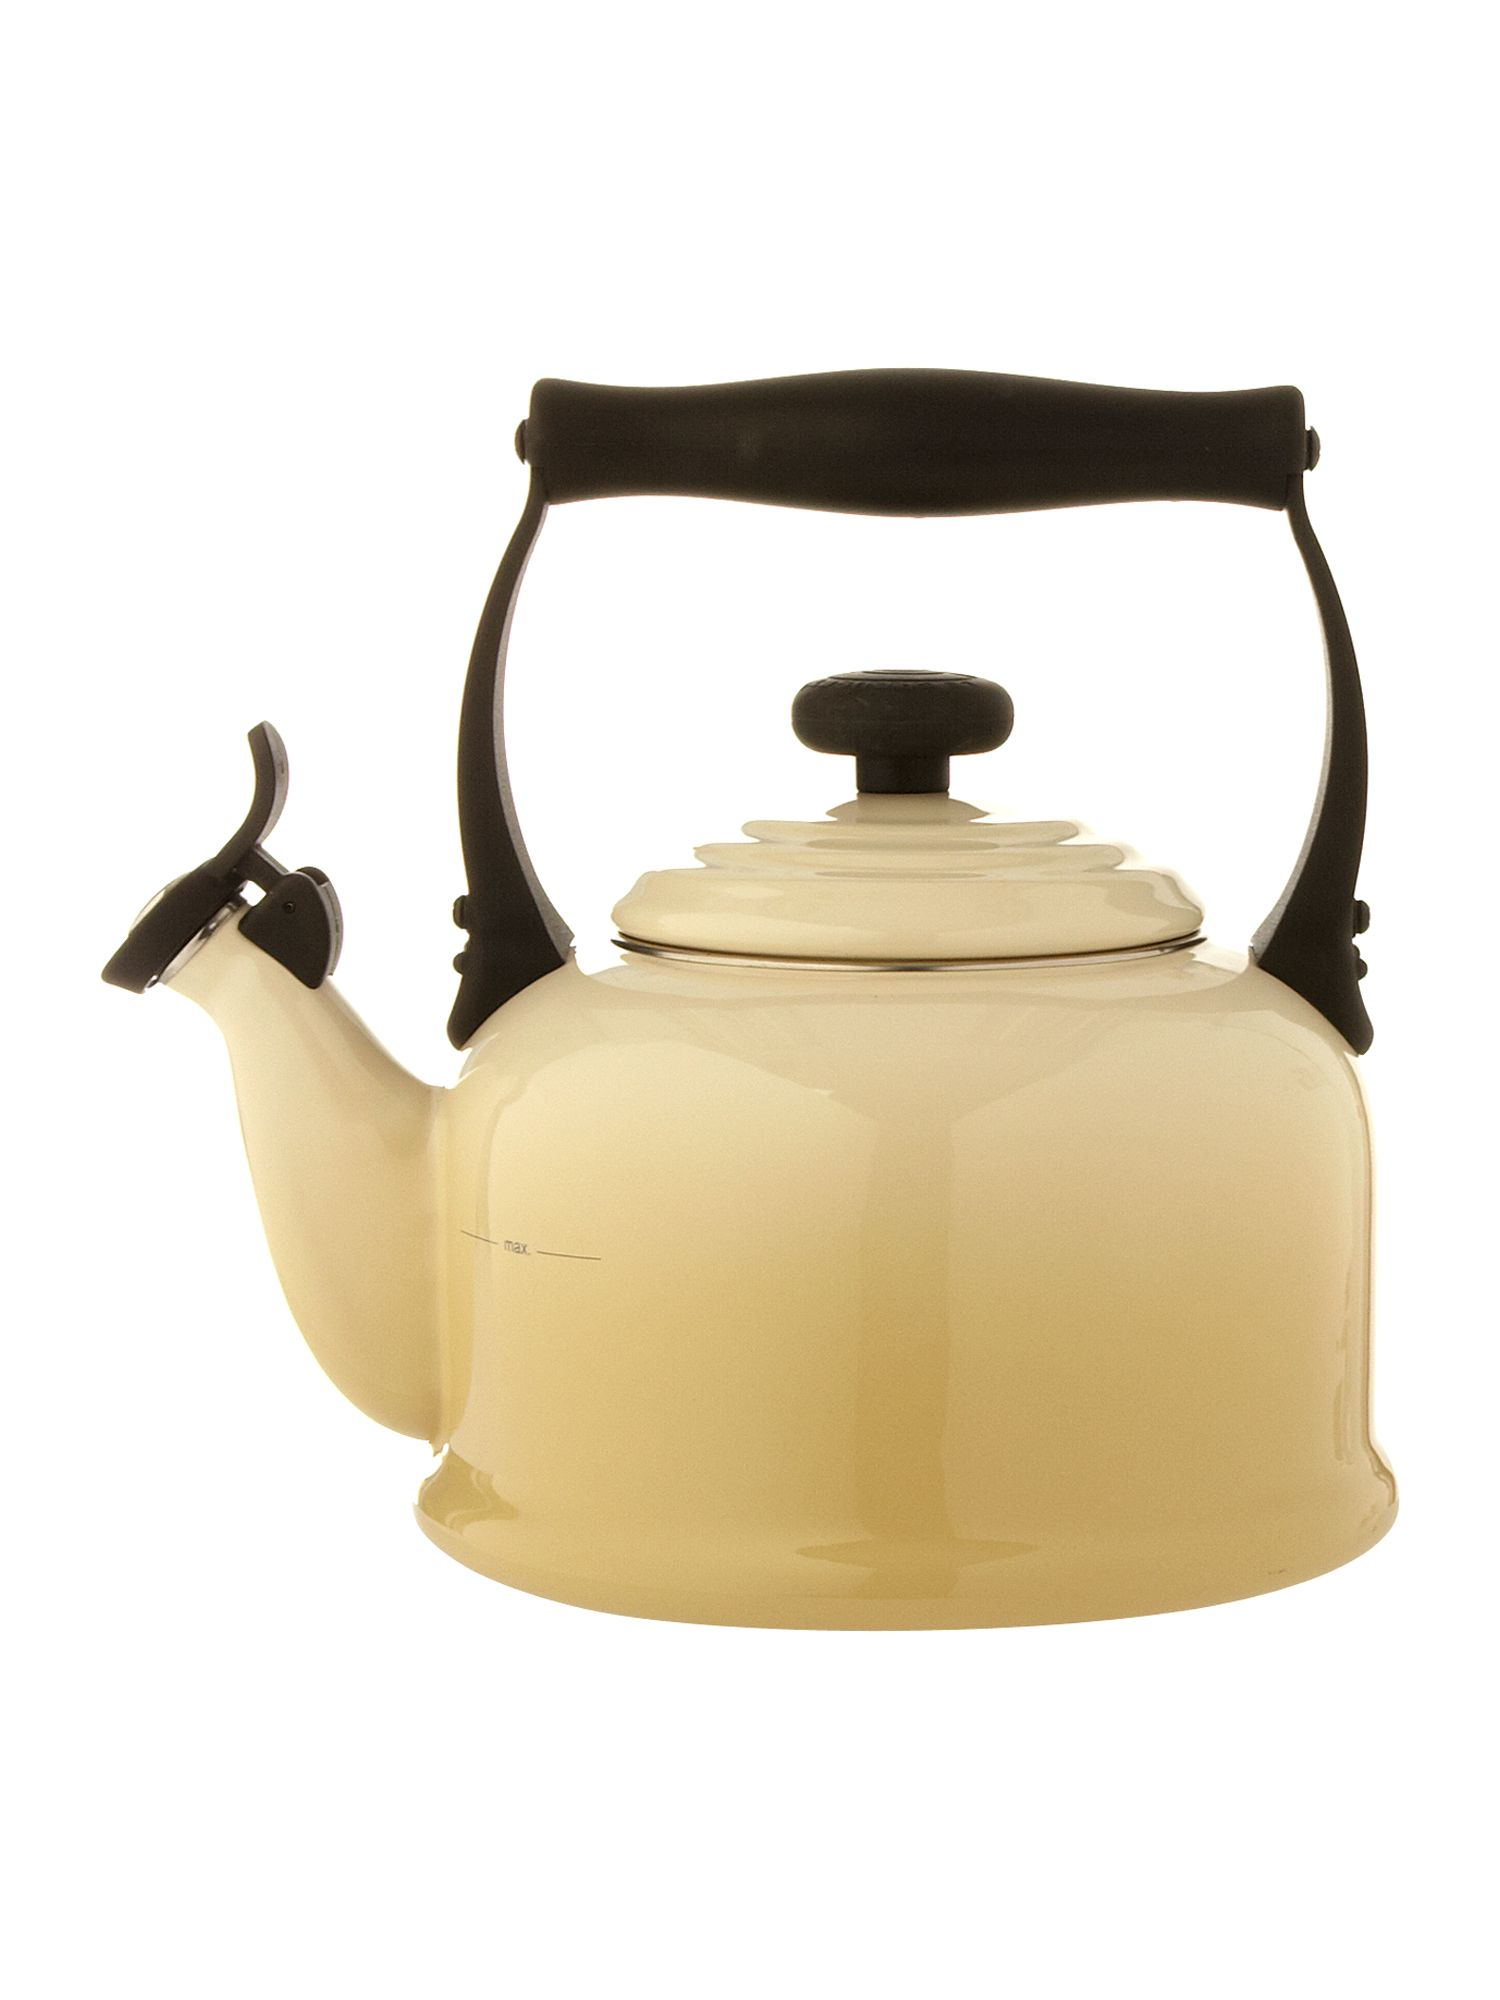 Almond traditional stove whistle kettle